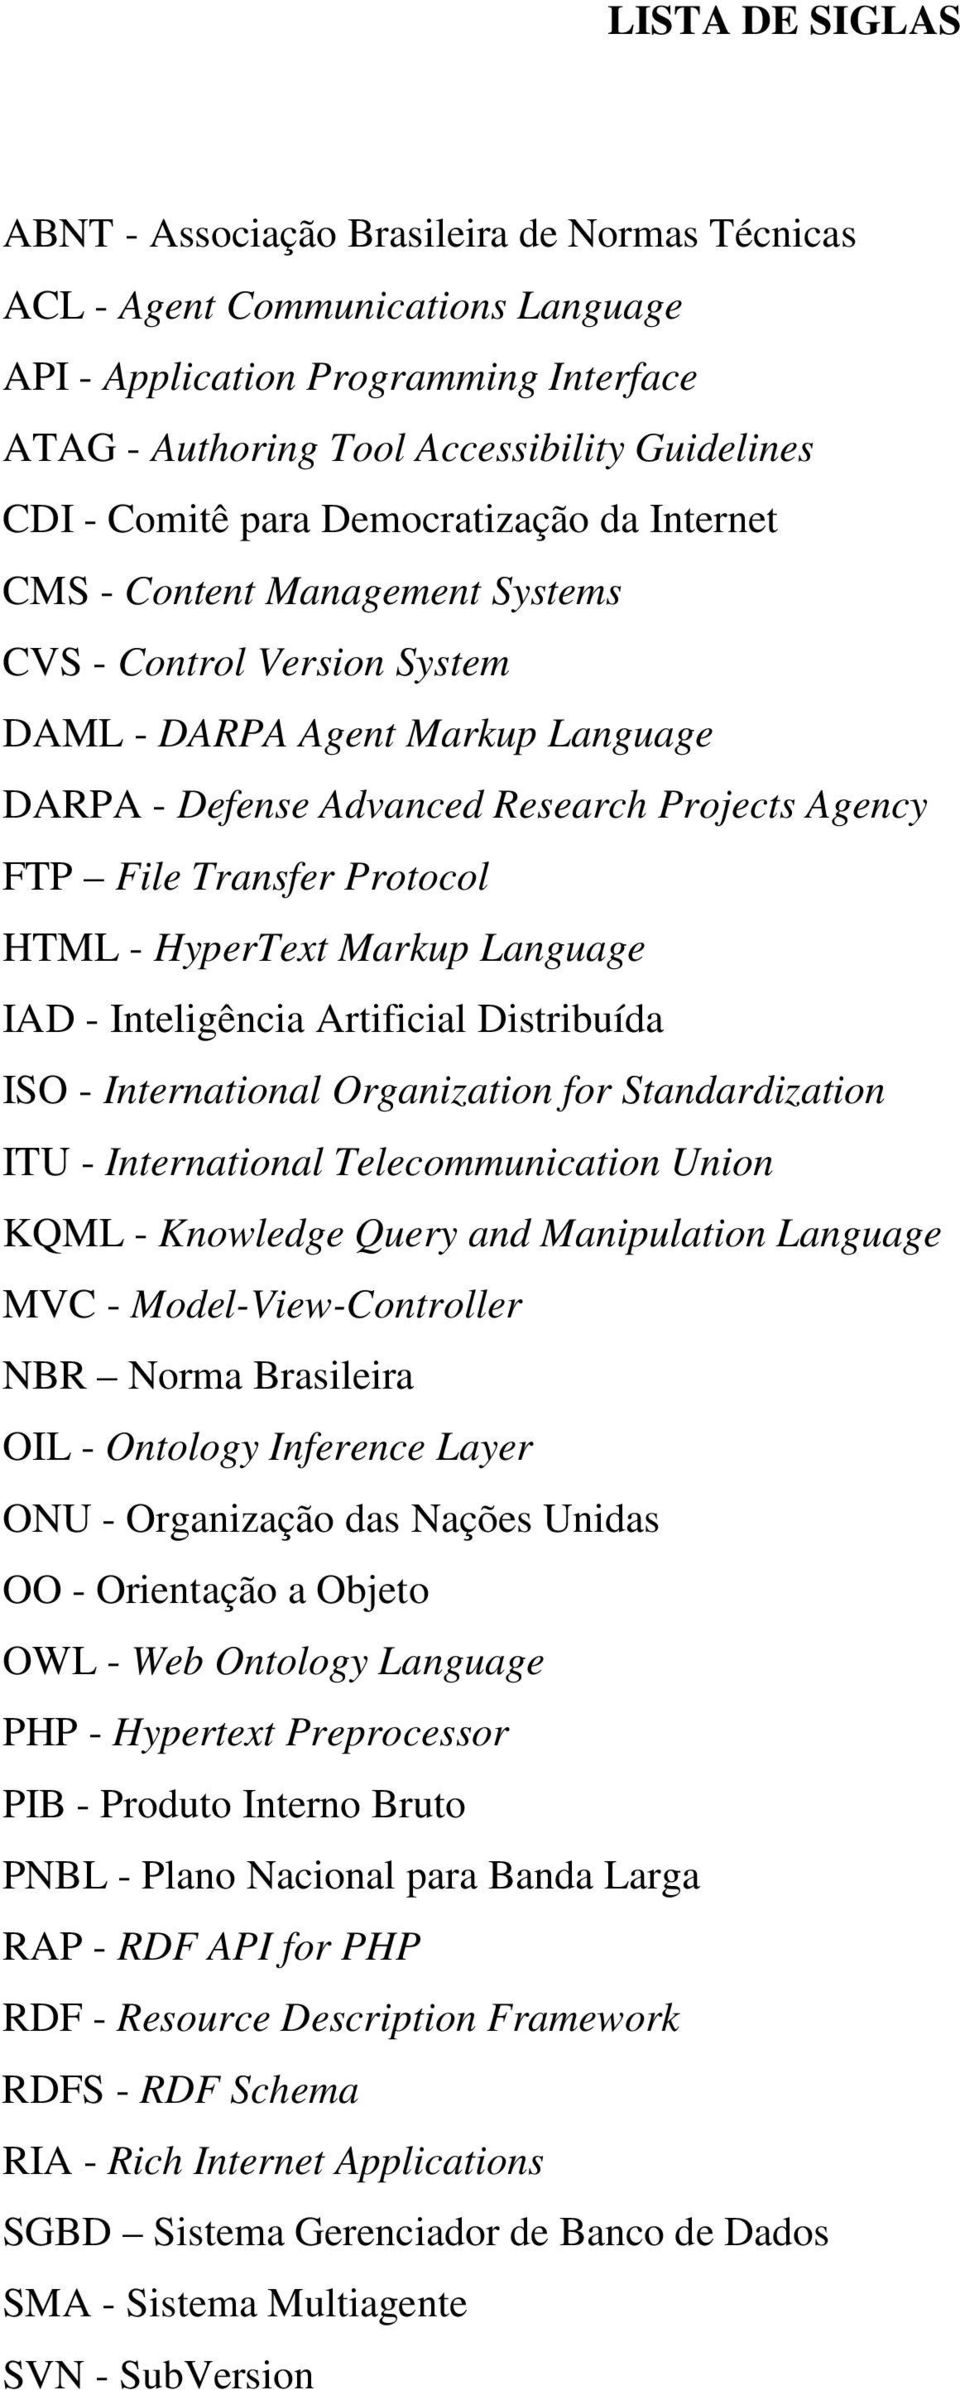 Protocol HTML - HyperText Markup Language IAD - Inteligência Artificial Distribuída ISO - International Organization for Standardization ITU - International Telecommunication Union KQML - Knowledge